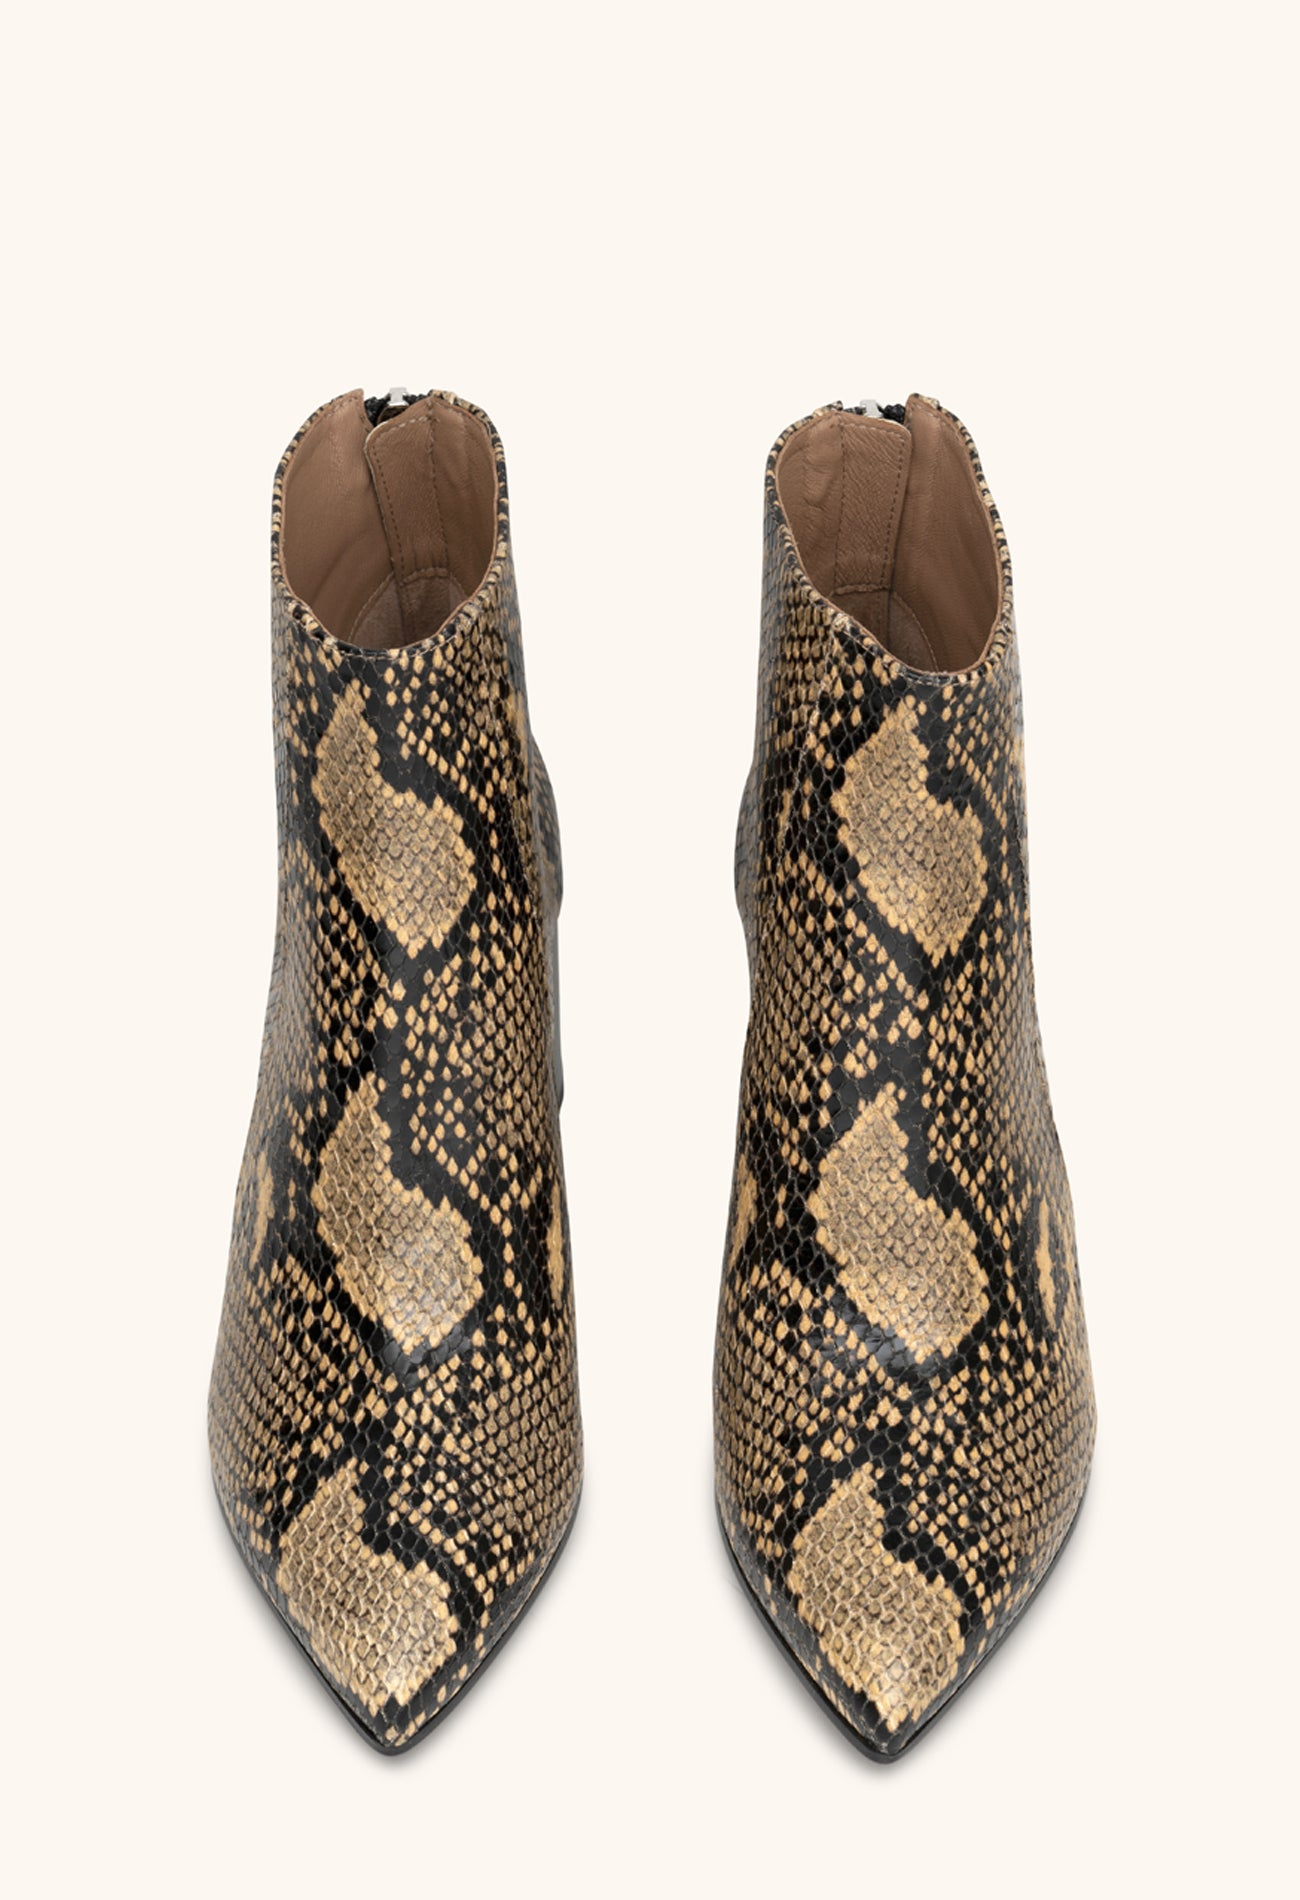 Armada ankle boots in straw python print leather